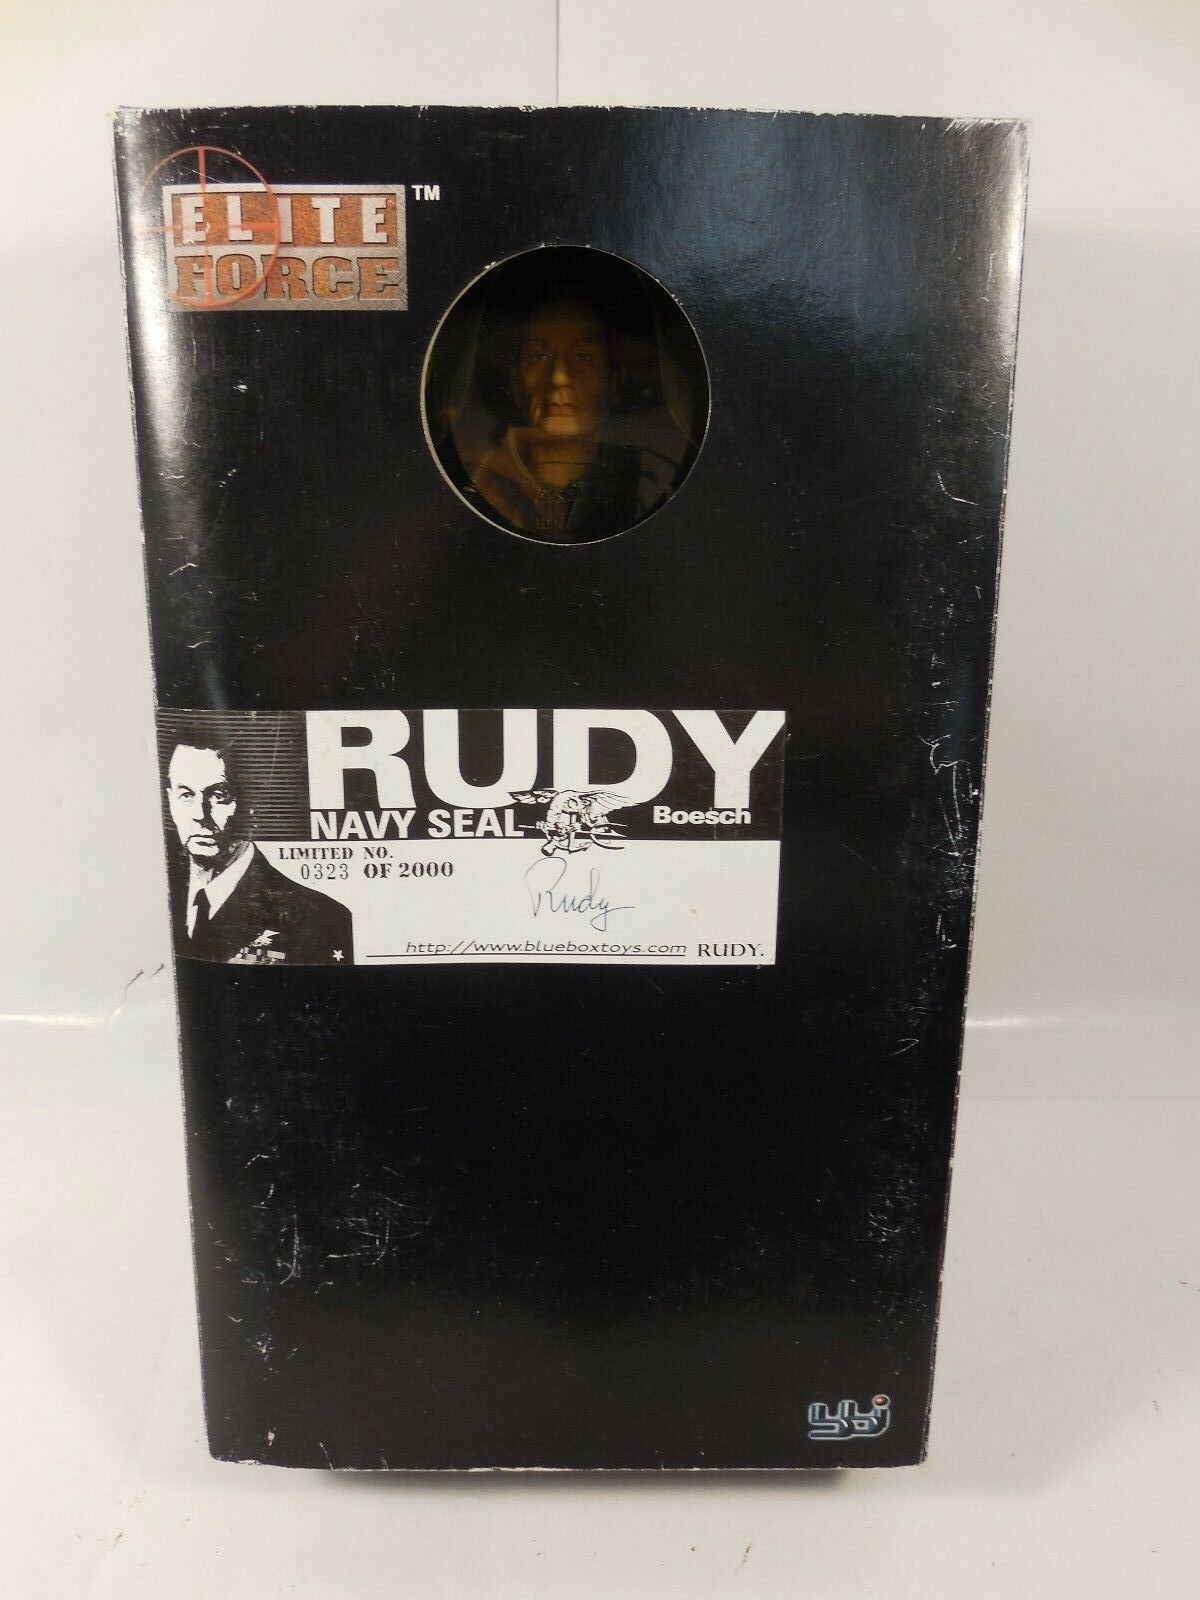 RARE SIGNED BBI ELITE FORCE NAVY SEAL SEAL SEAL RUDY BOESCH 1 6 SCALE FIGURE  323 2000 MIB 343f47